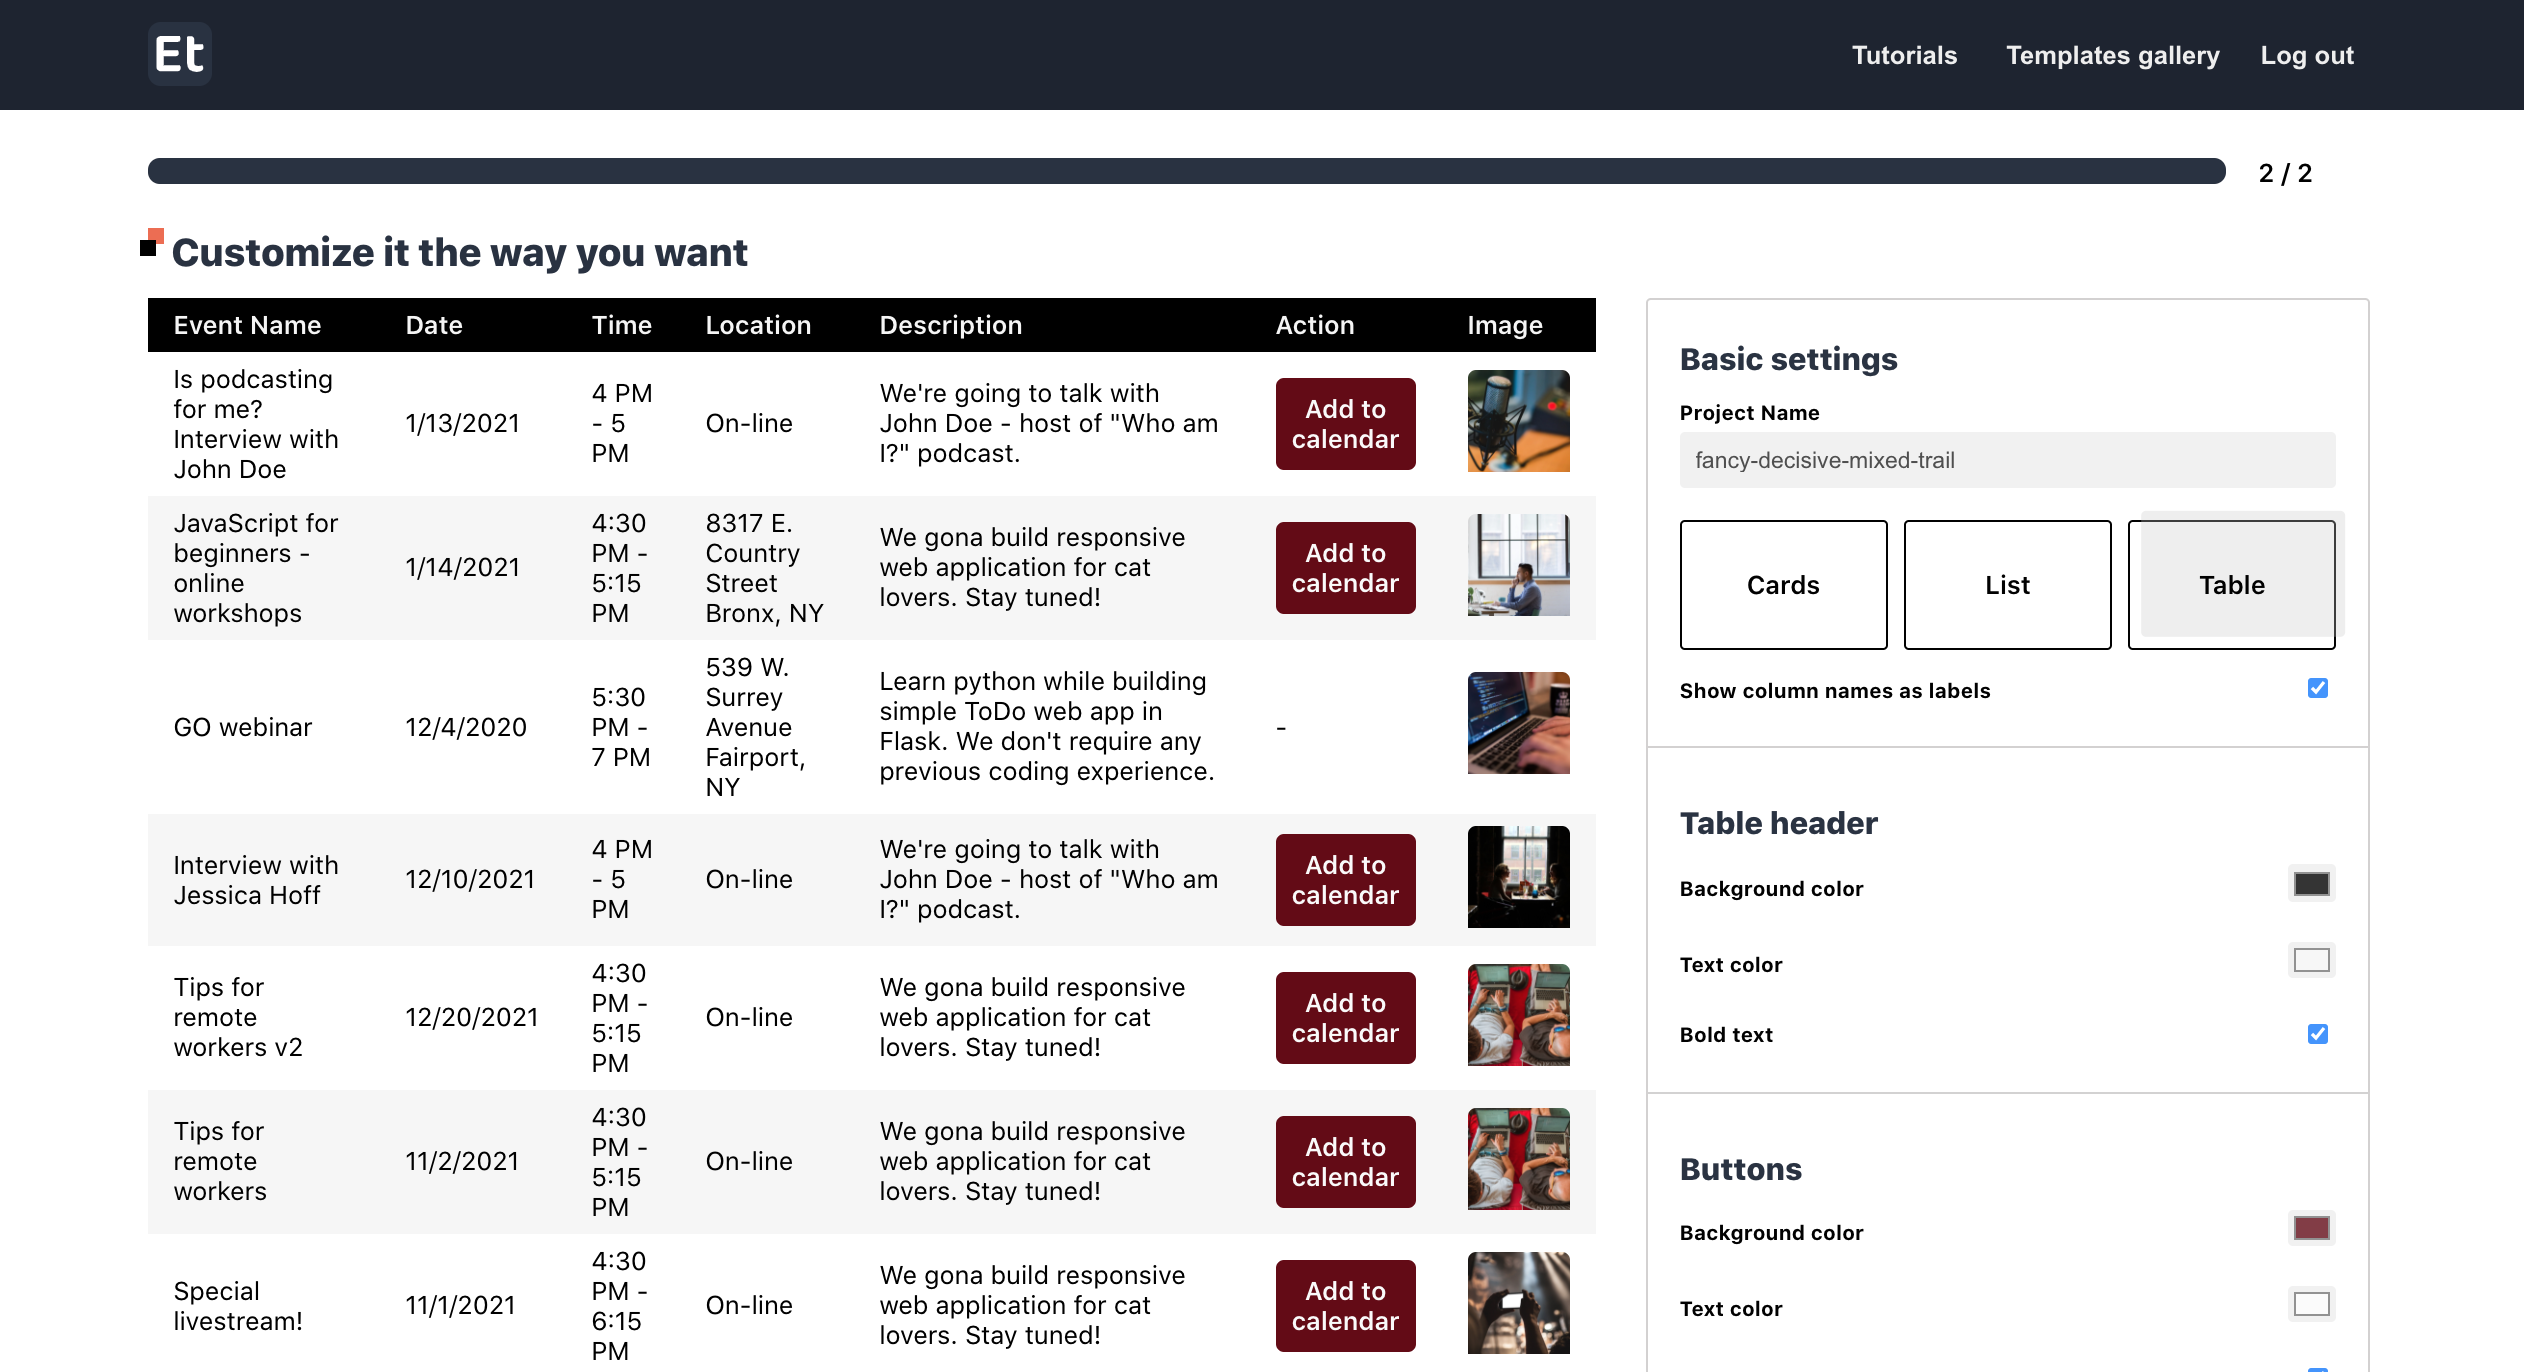 Customization using the web interface - table view